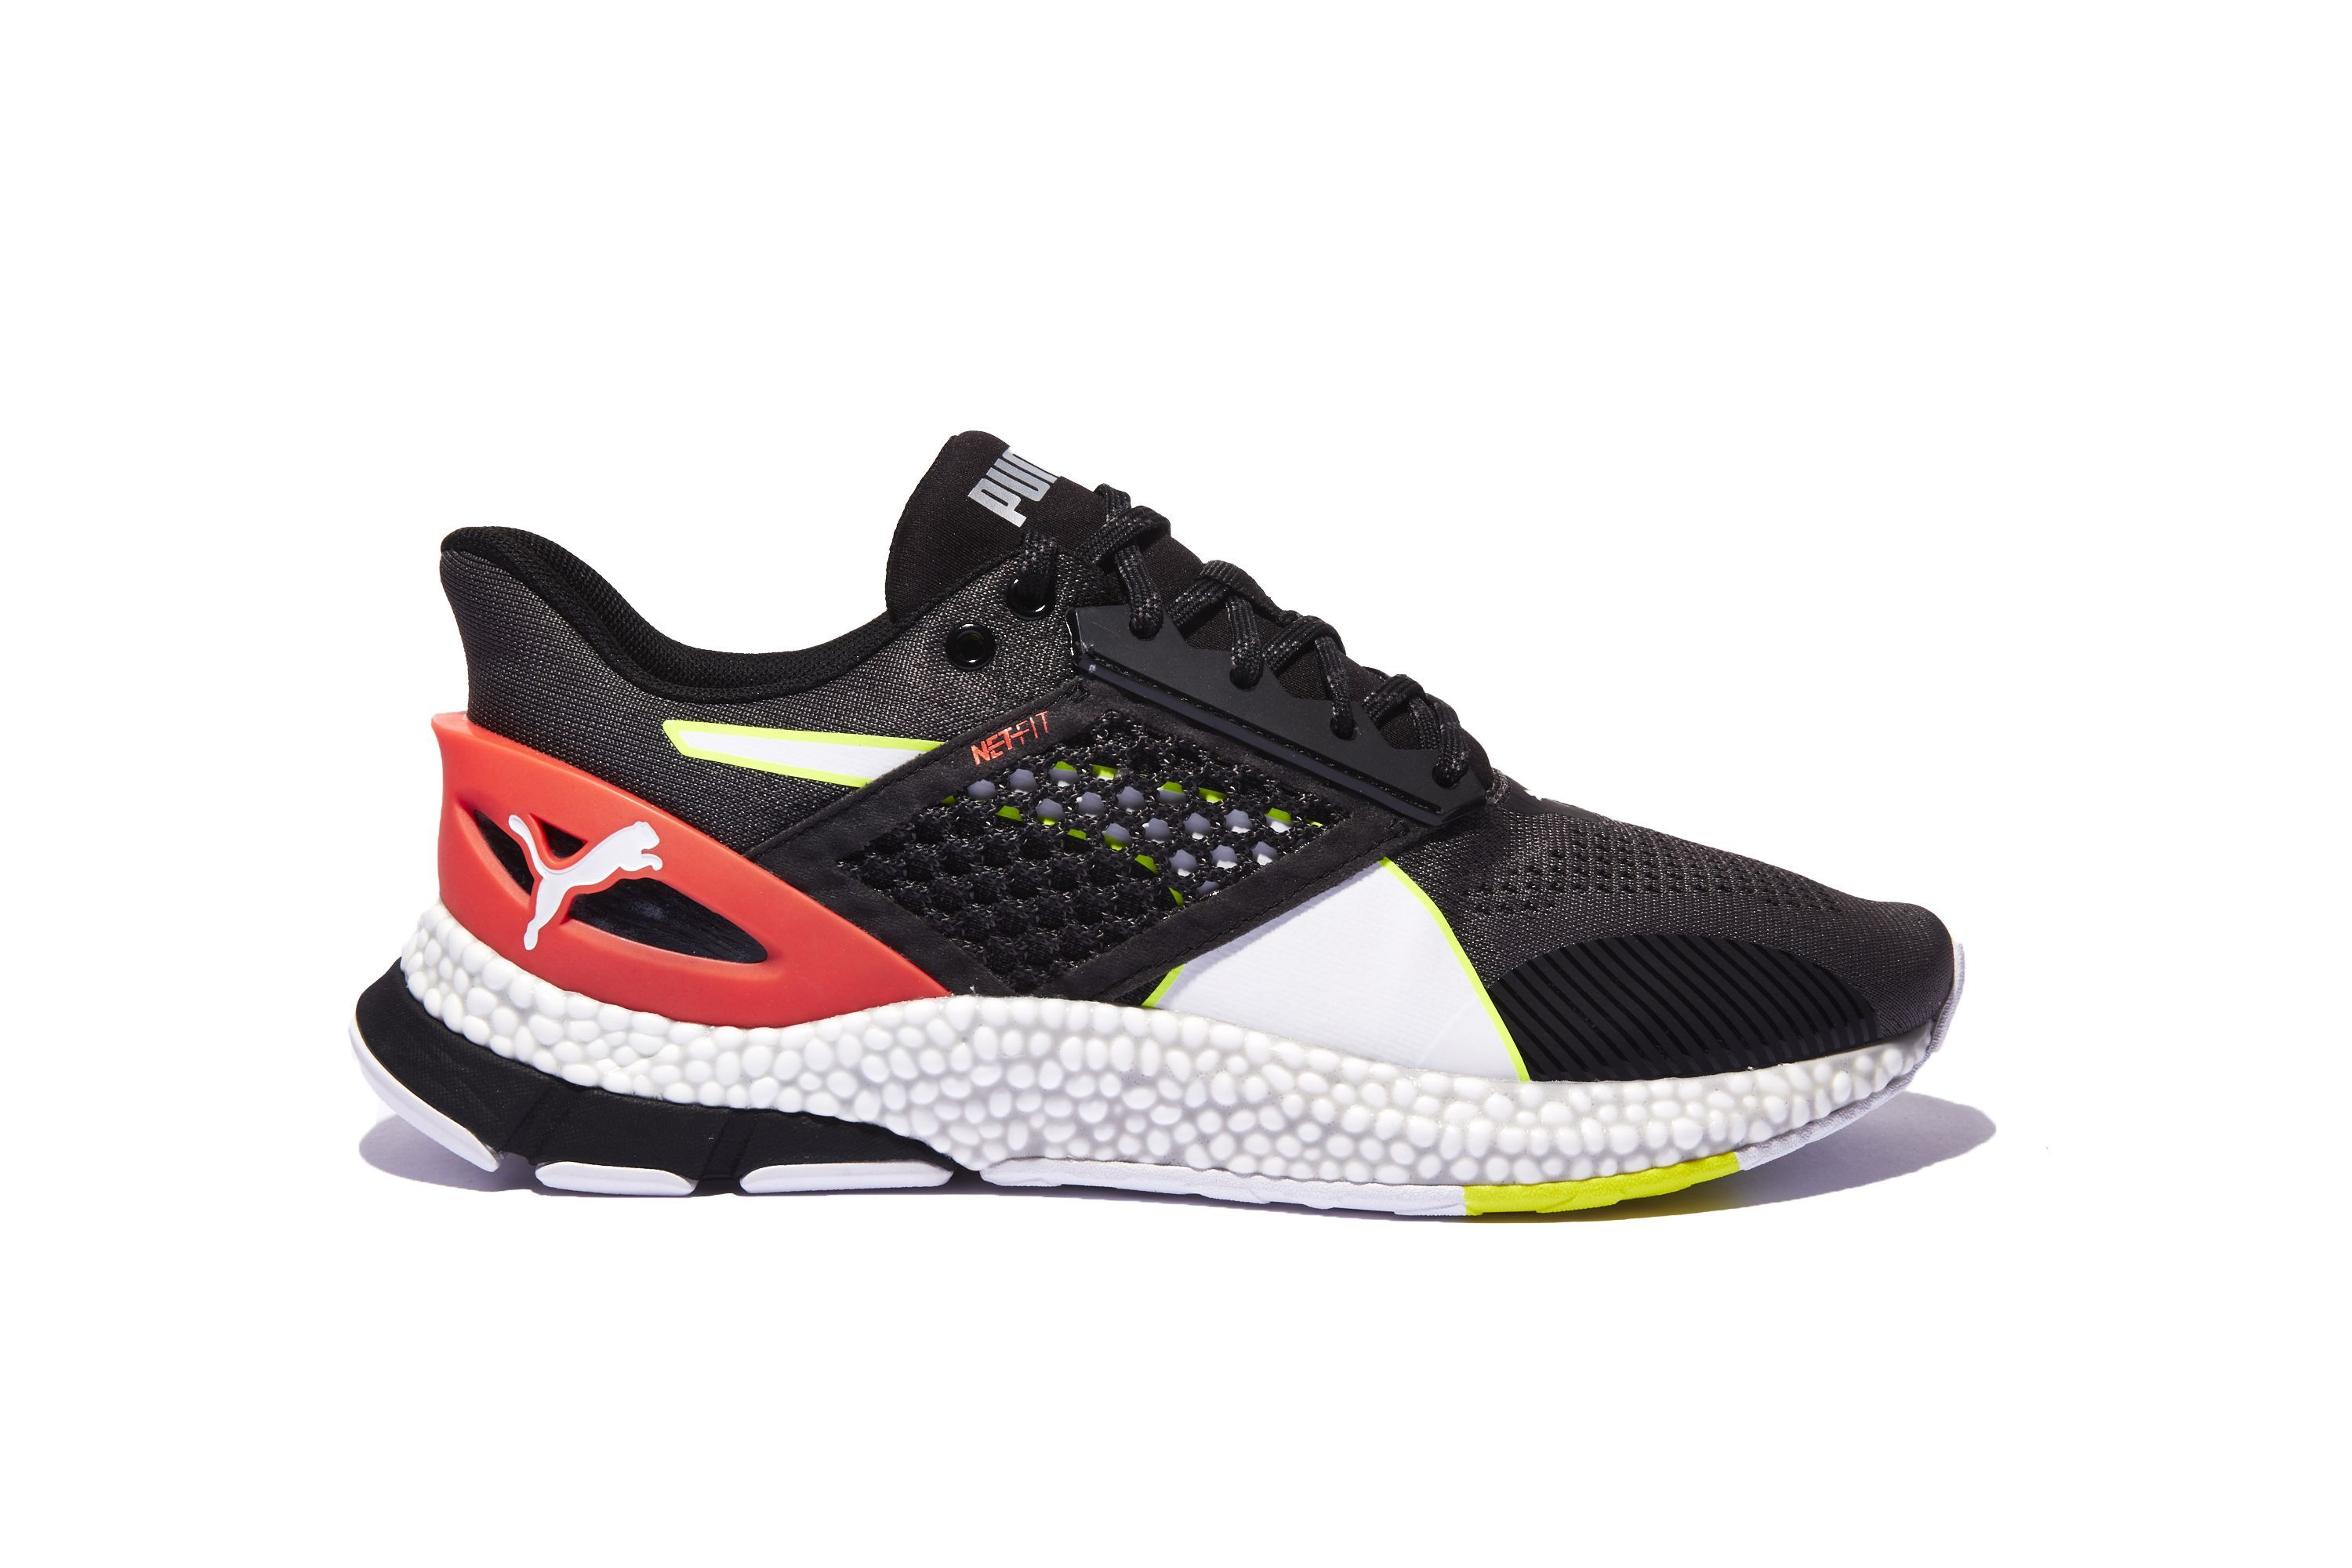 puma clogs for, Outstanding Features Good Puma Running Shoes